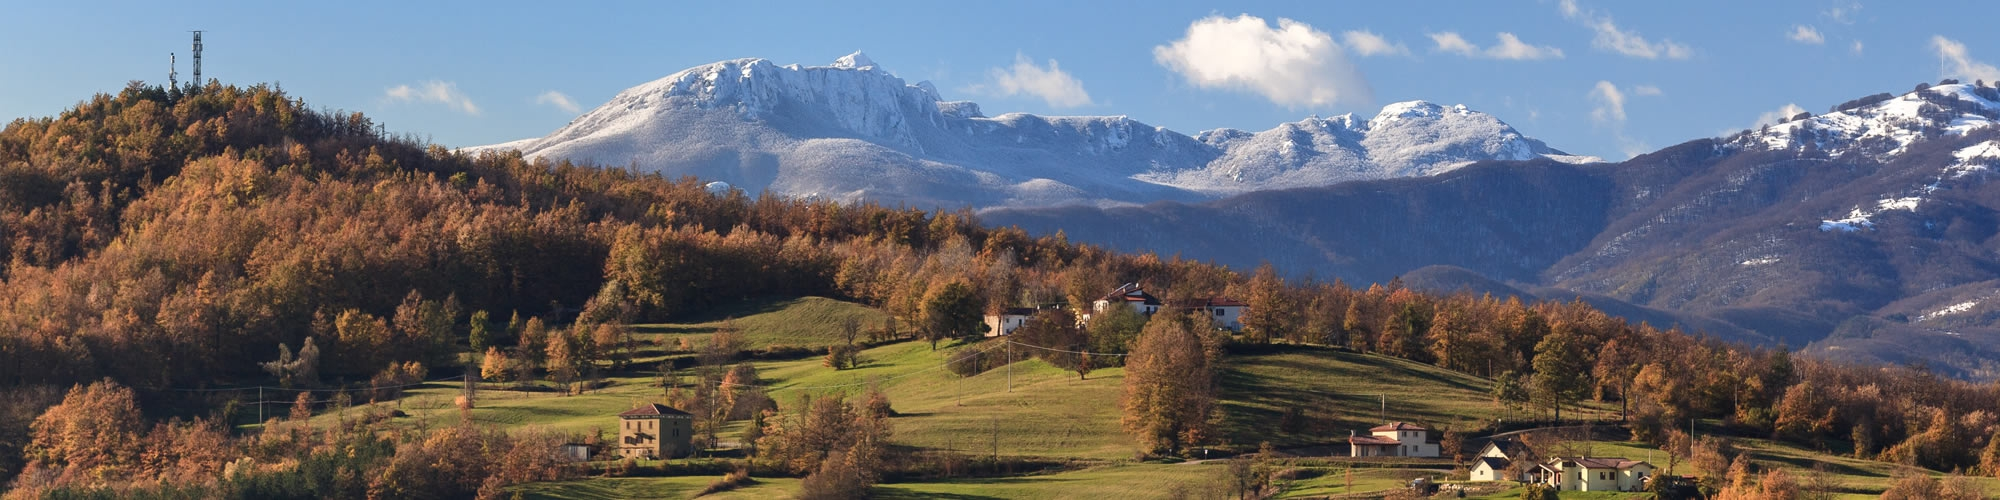 The Apennines between Tuscany and Emilia Romagna